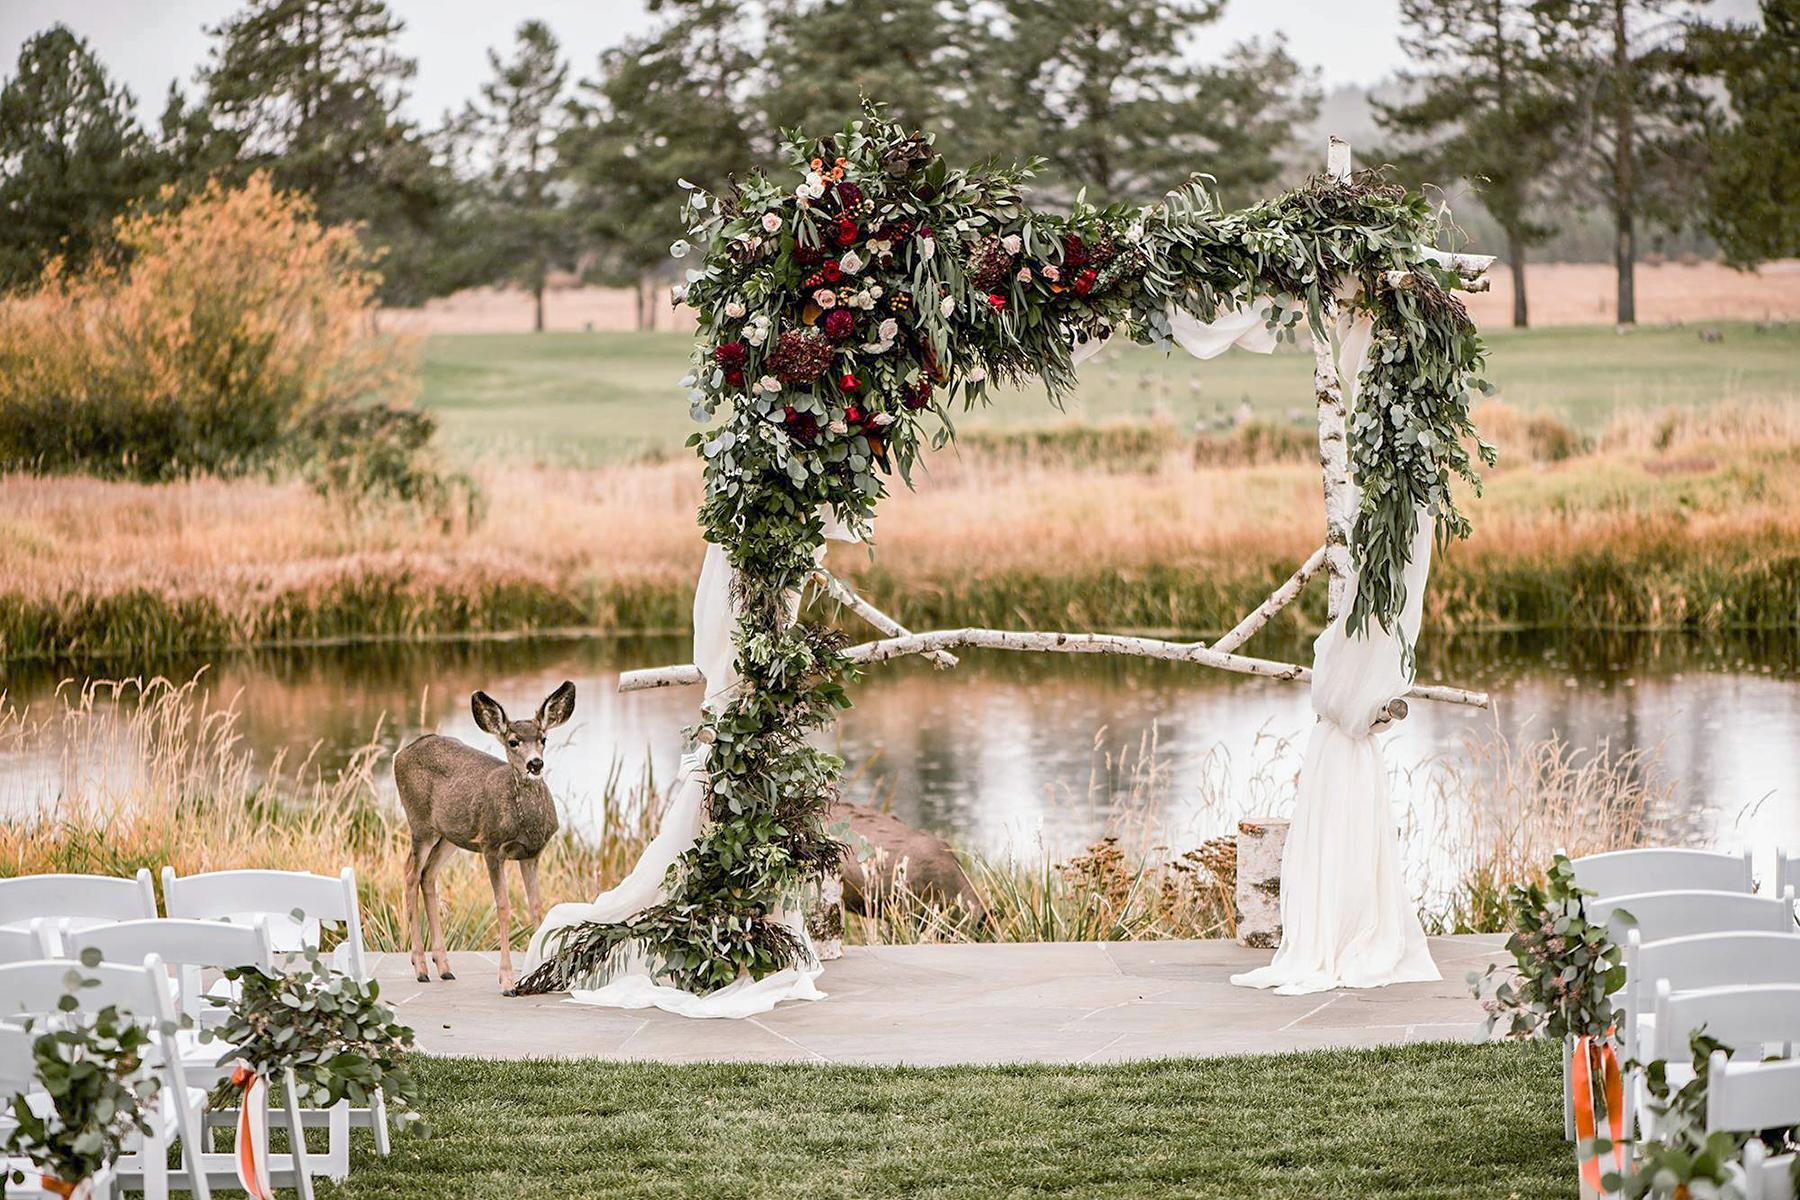 03_RusticWeddingVenues__SunriverResort_28685279_10156191842989099_4969397016829362176_o